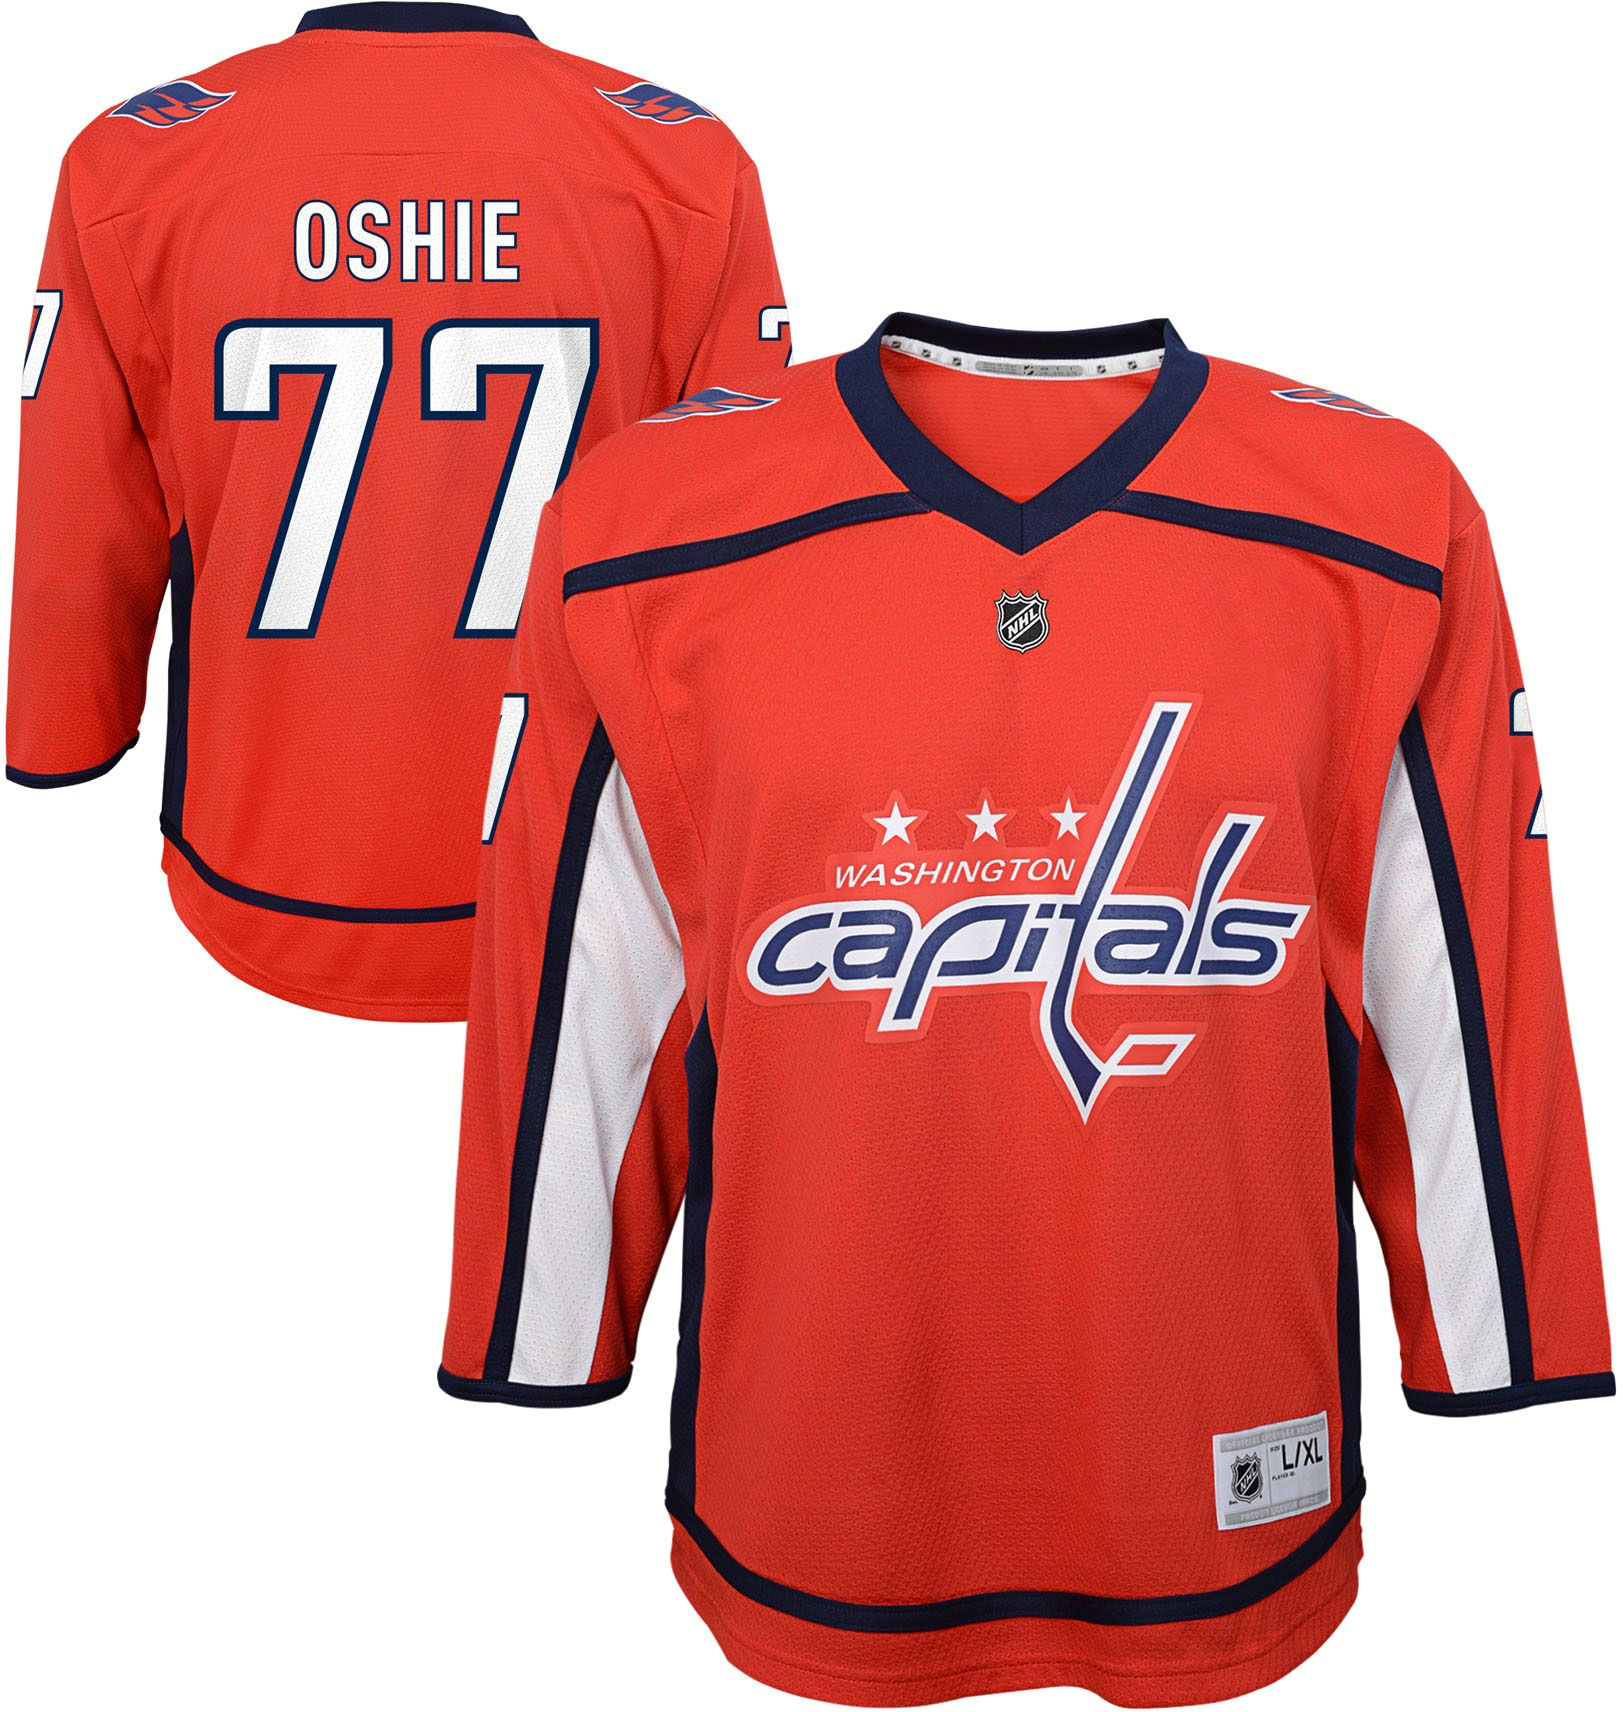 795a9aa4 ... authentic fights cancer practice adidas e0e3c c2b13; best price nhl  youth washington capitals t.j. oshie 77 replica home jersey da6c5 14f0b